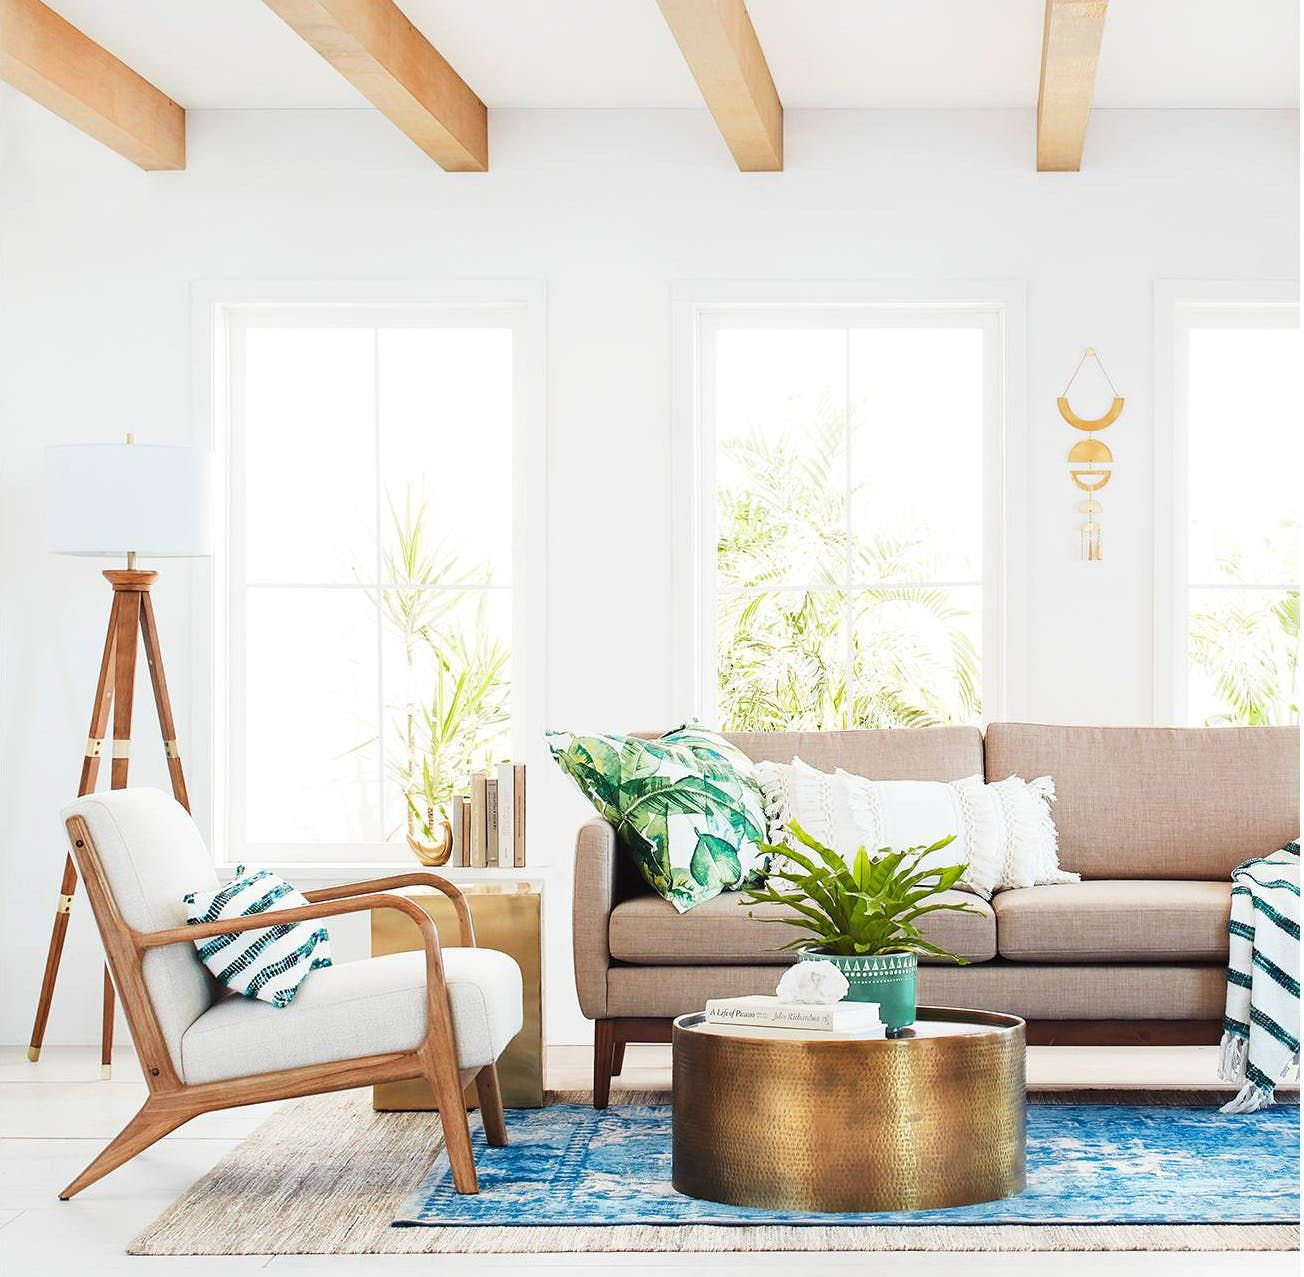 Target\'s Memorial Day Sale: Our Picks for the Best Deals | Interiors ...